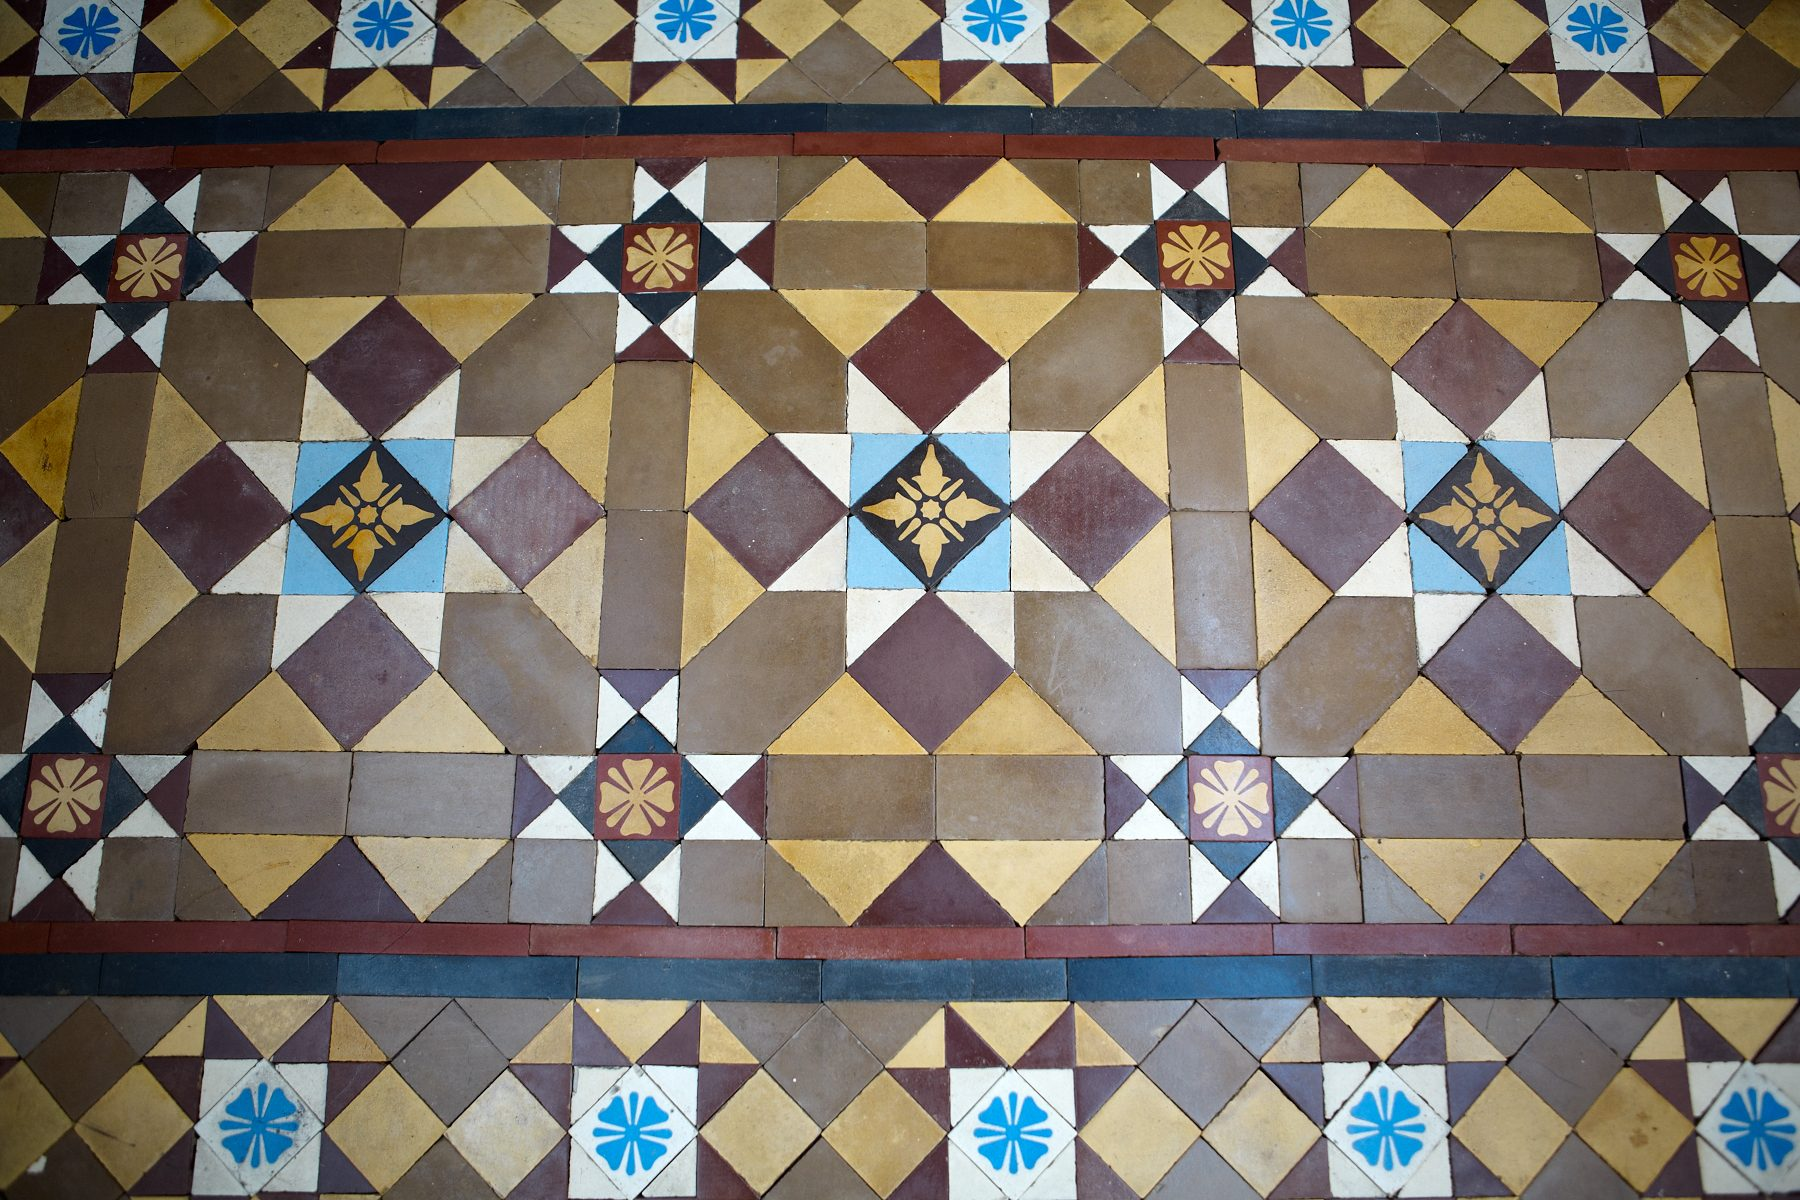 Images of flooring tiles